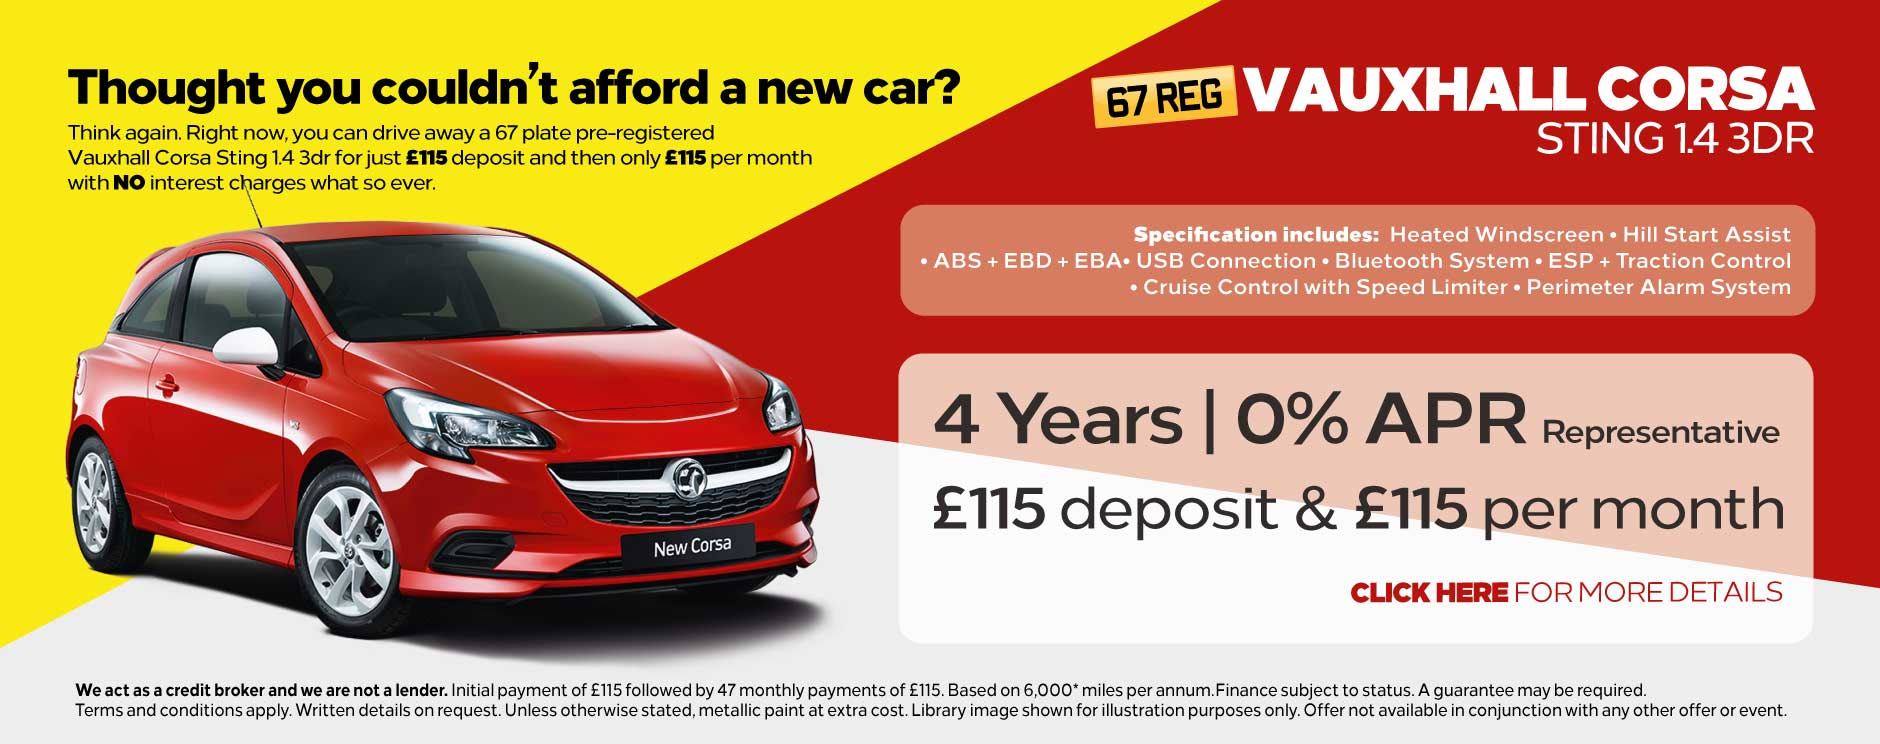 Vauxhall Corsa Sting Christmas Offer BB